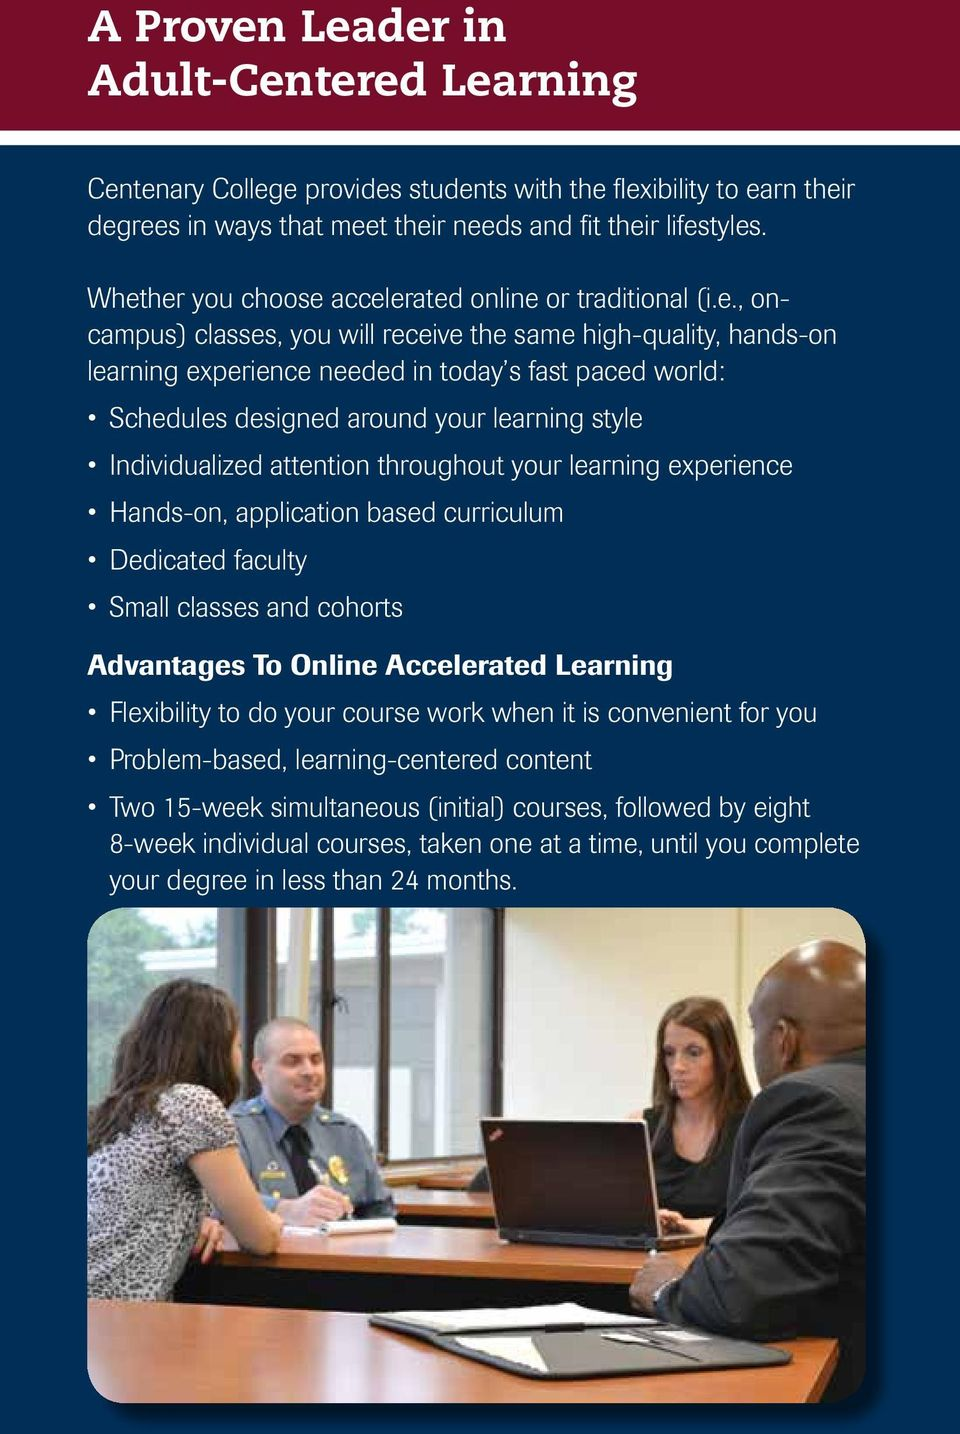 designed around your learning style Individualized attention throughout your learning experience Hands-on, application based curriculum Dedicated faculty Small classes and cohorts Advantages To